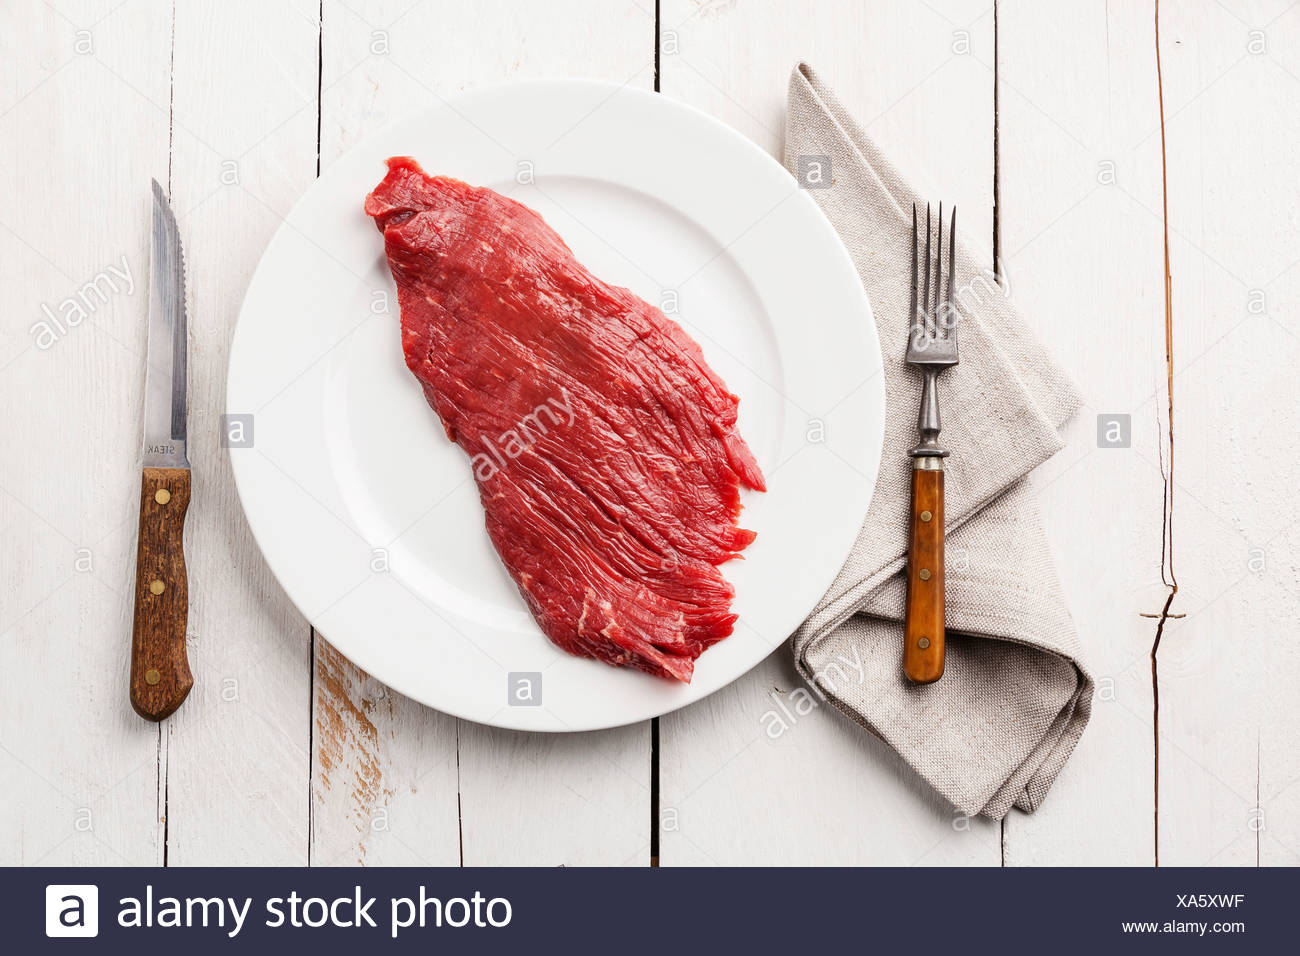 Prime cut of beef steak on plate on white wooden background - Stock Image